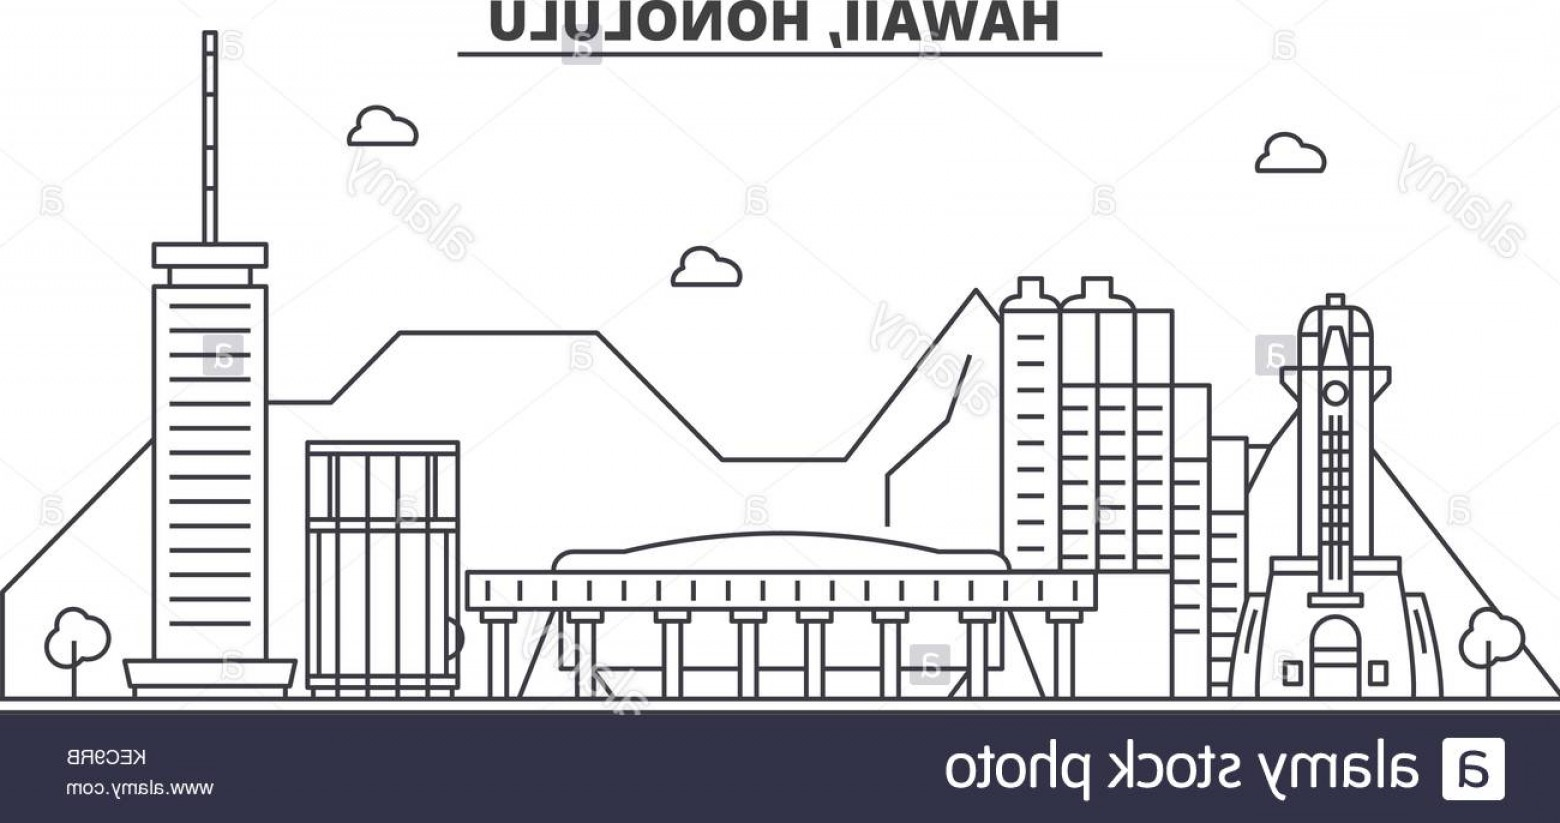 City Of Honolulu At Night Vector: Stock Image Hawaii Honolulu Architecture Line Skyline Illustration Linear Vector